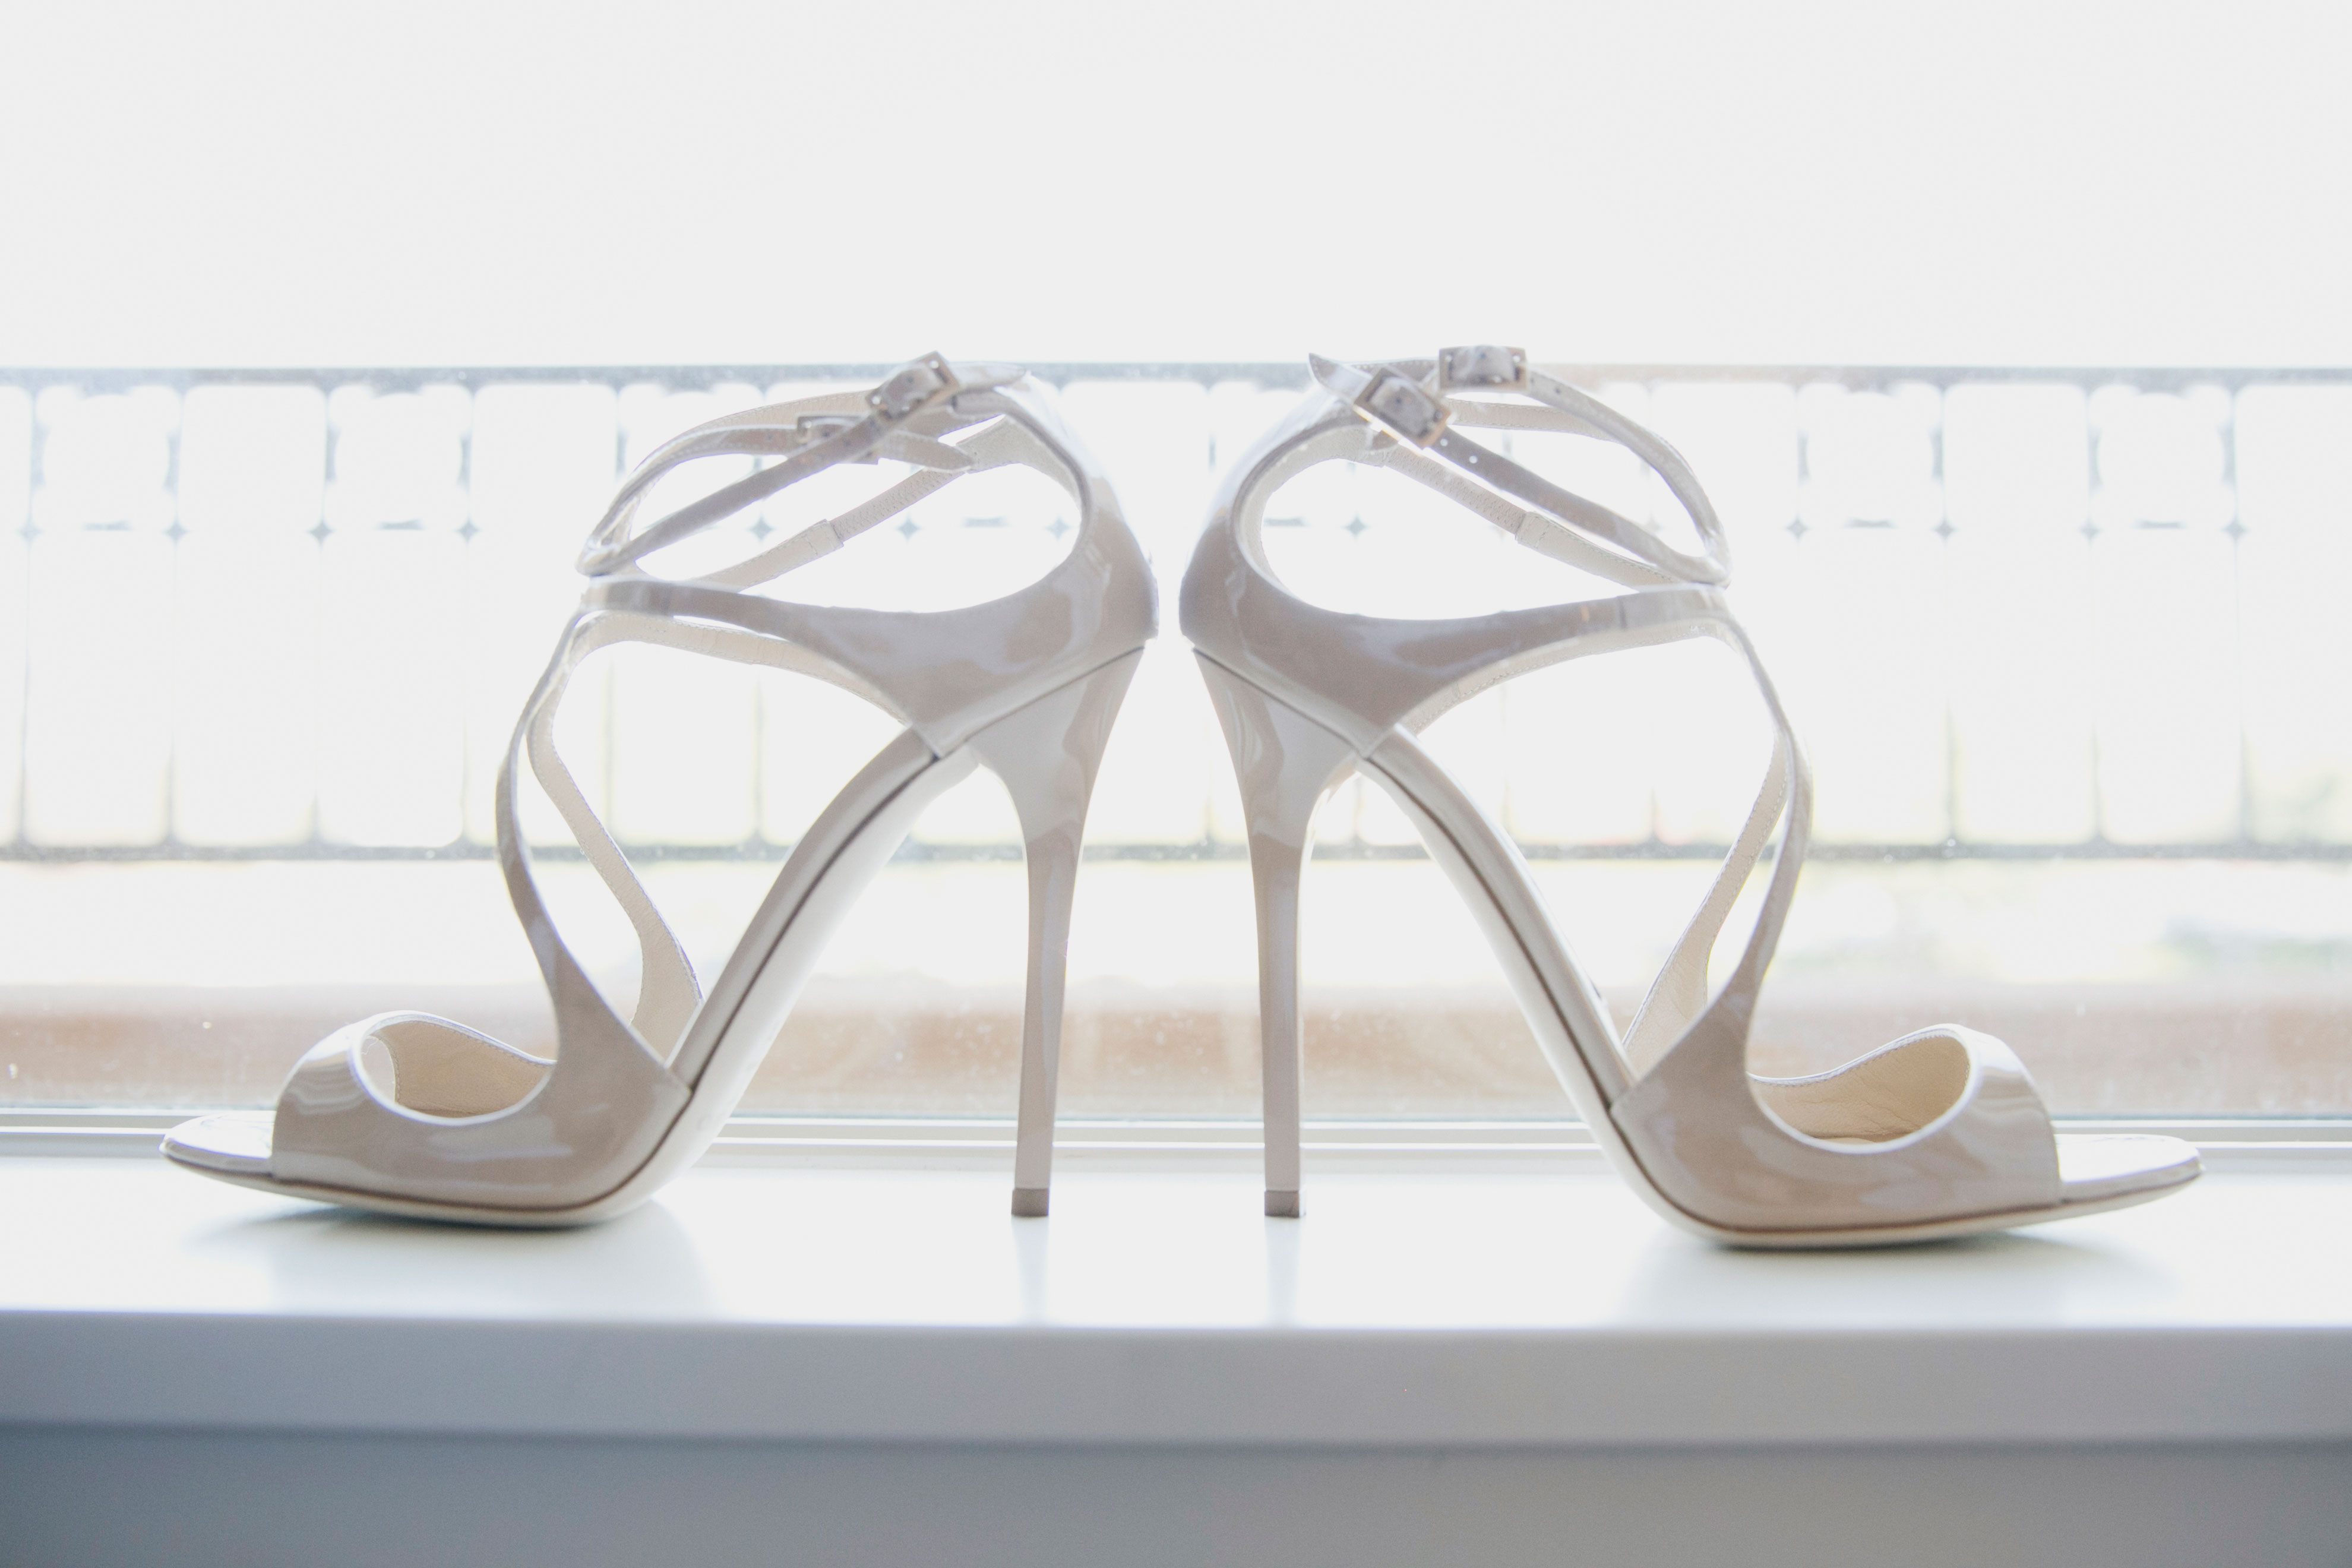 760eb4f696a57 Wedding Shoes  25 Stylish Heels Worn by Real Brides - Inside Weddings